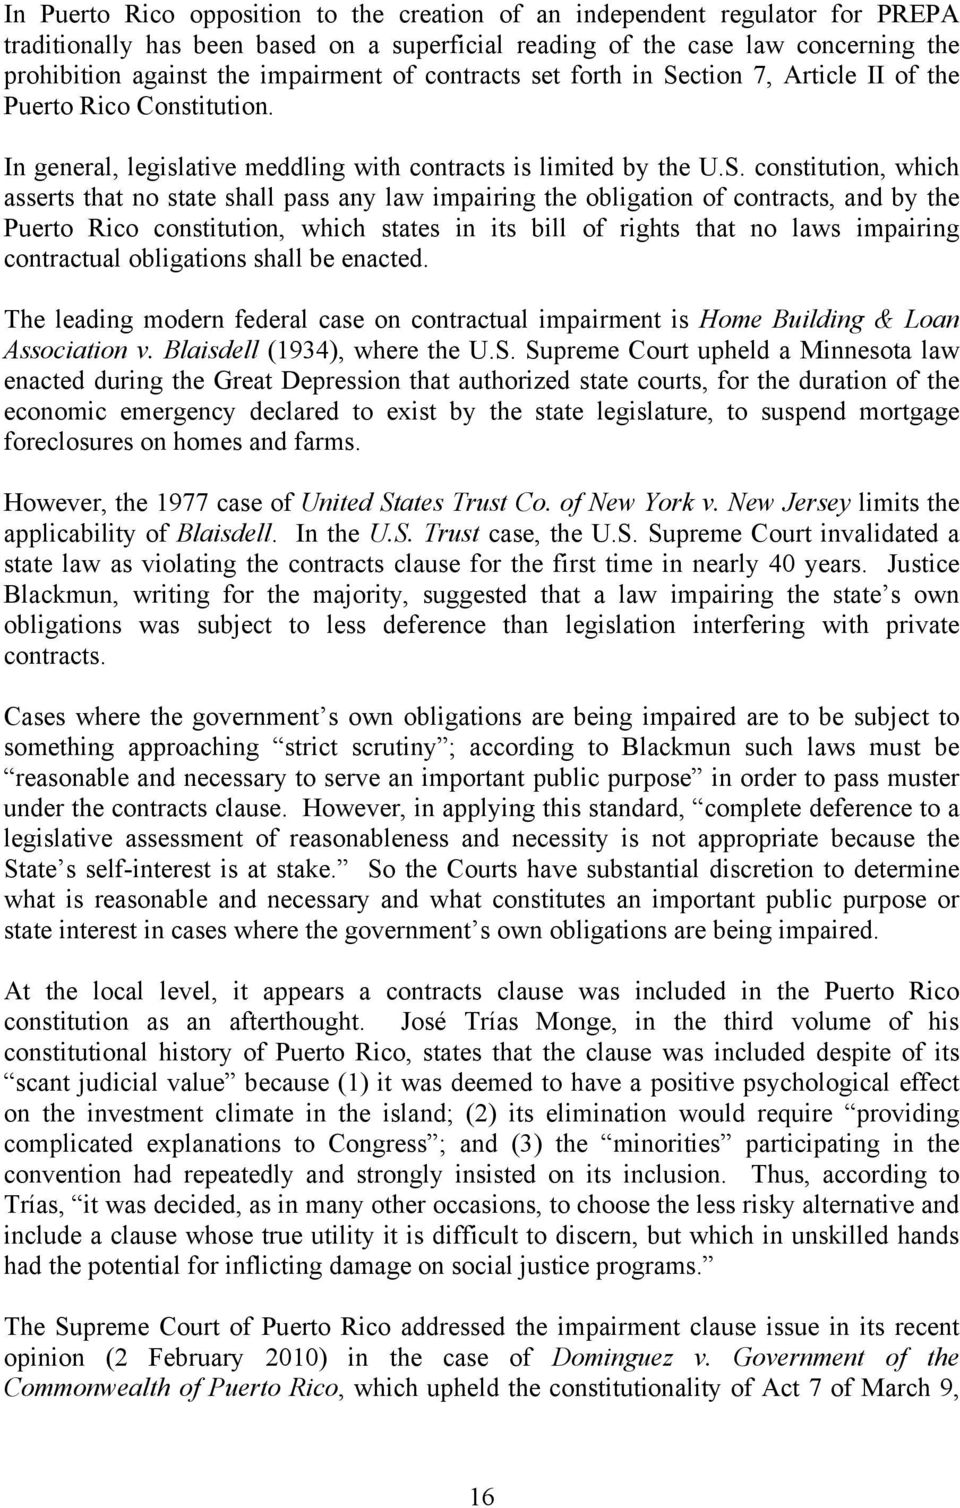 ction 7, Article II of the Puerto Rico Constitution. In general, legislative meddling with contracts is limited by the U.S.